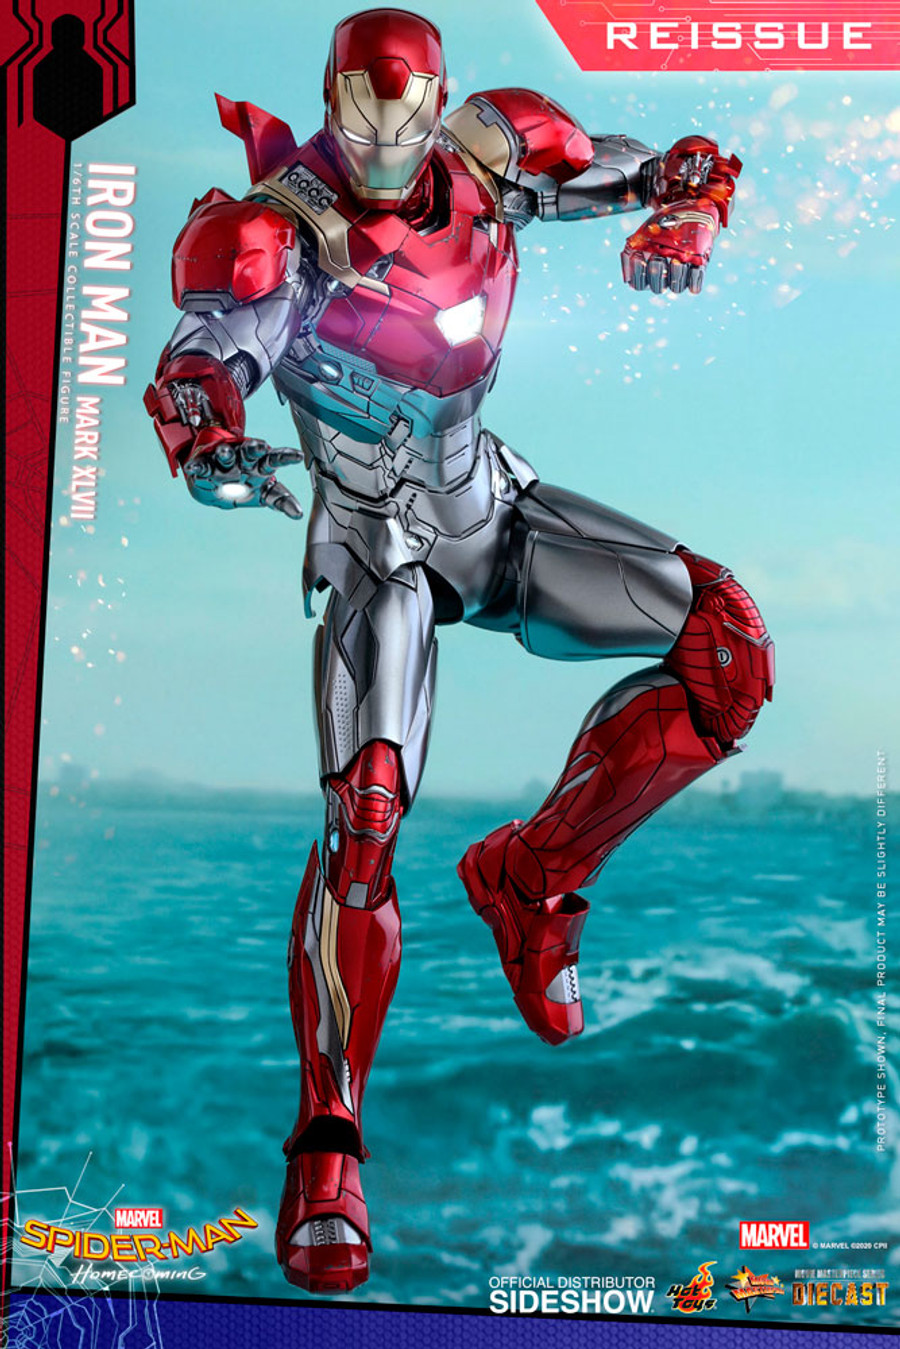 Hot Toys - Spider-Man: Homecoming - Iron Man Mark XLVII (Reissue)